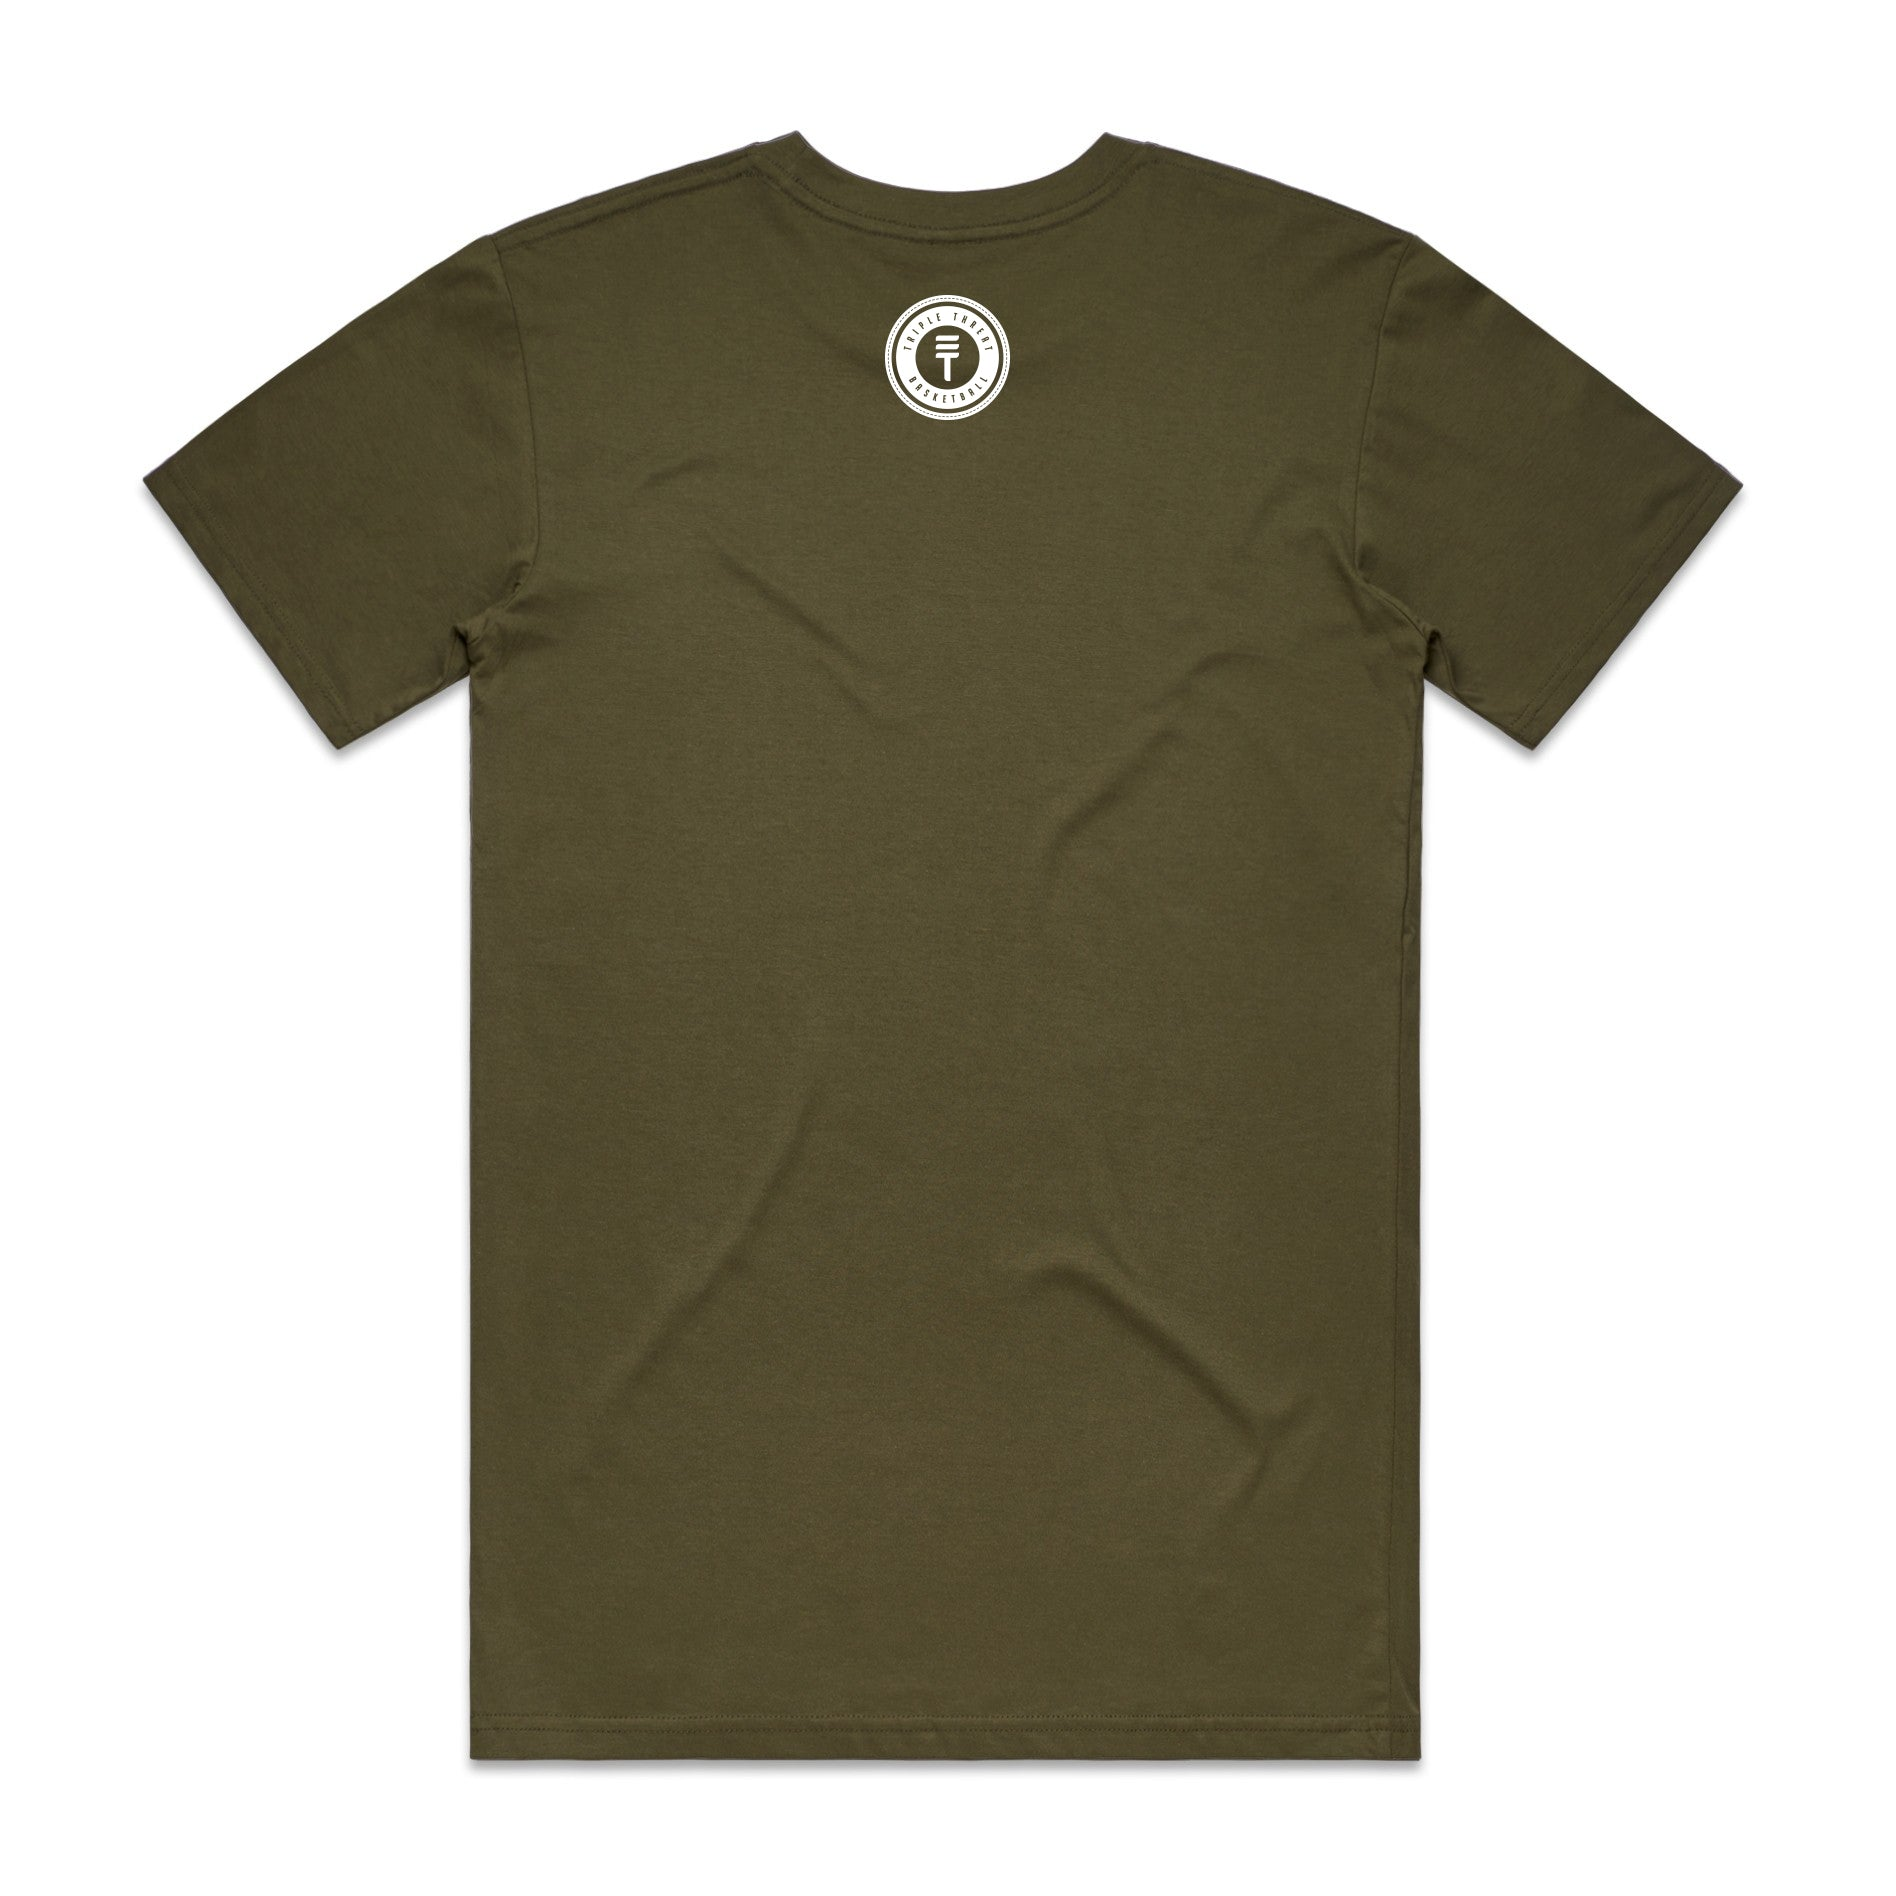 FLAG T-SHIRT - ARMY